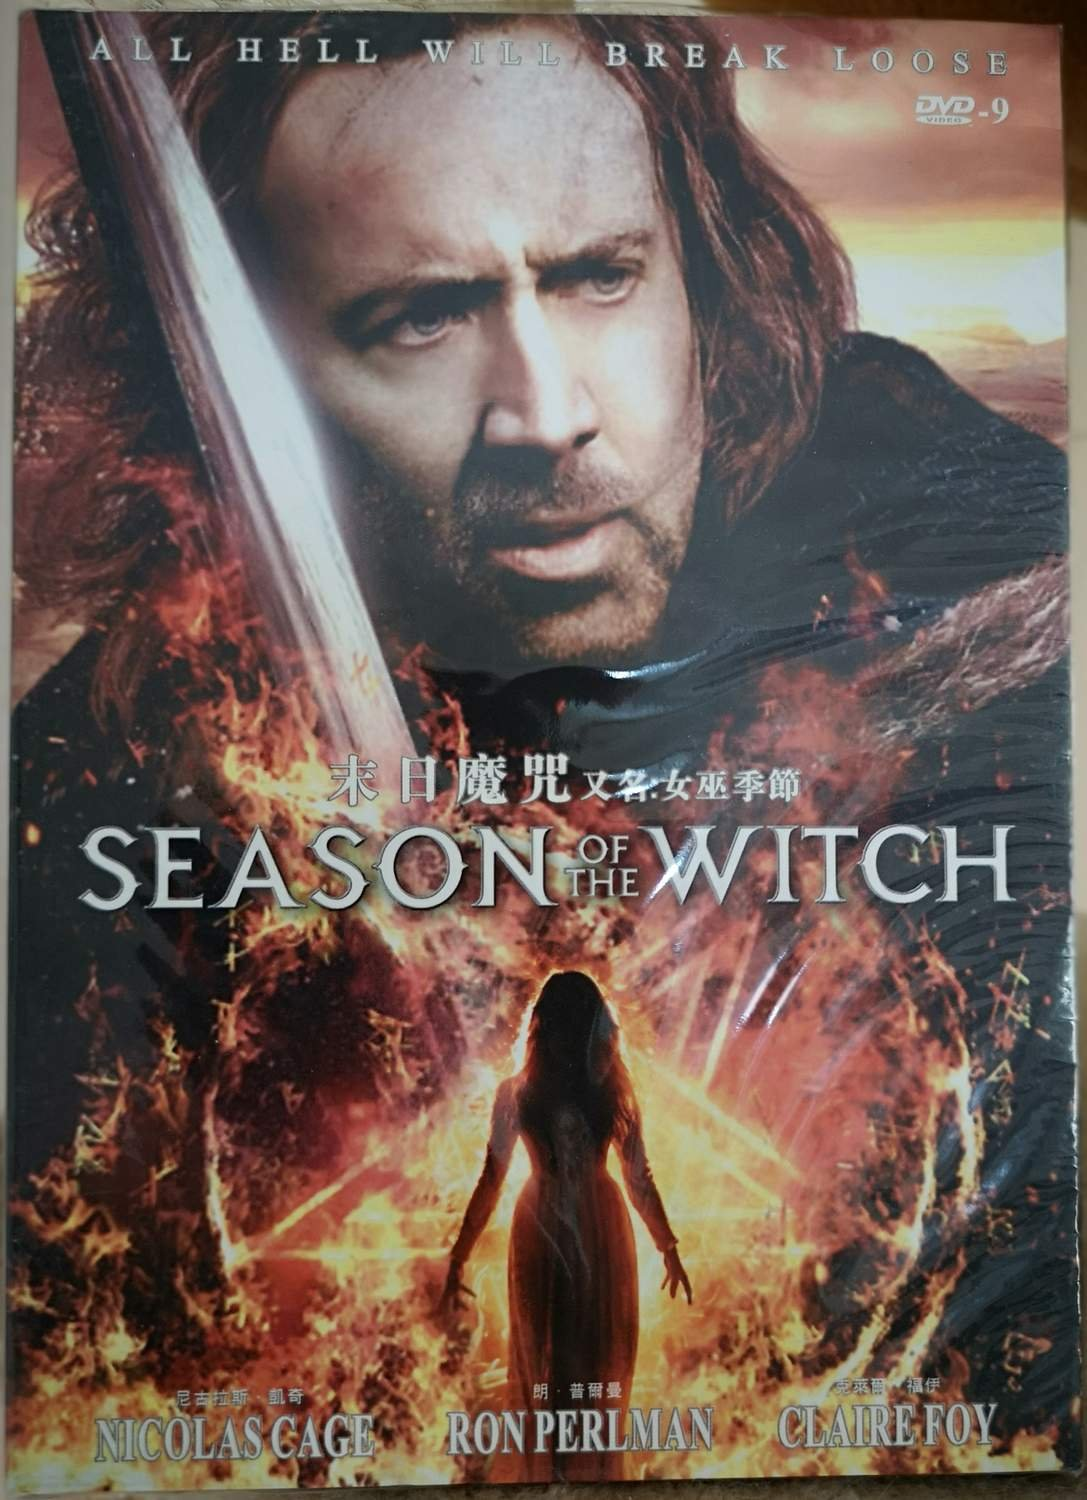 DVD Season of the Witch med bla Nicolas Cage. Engelska - Ny, inplastad, Region 1